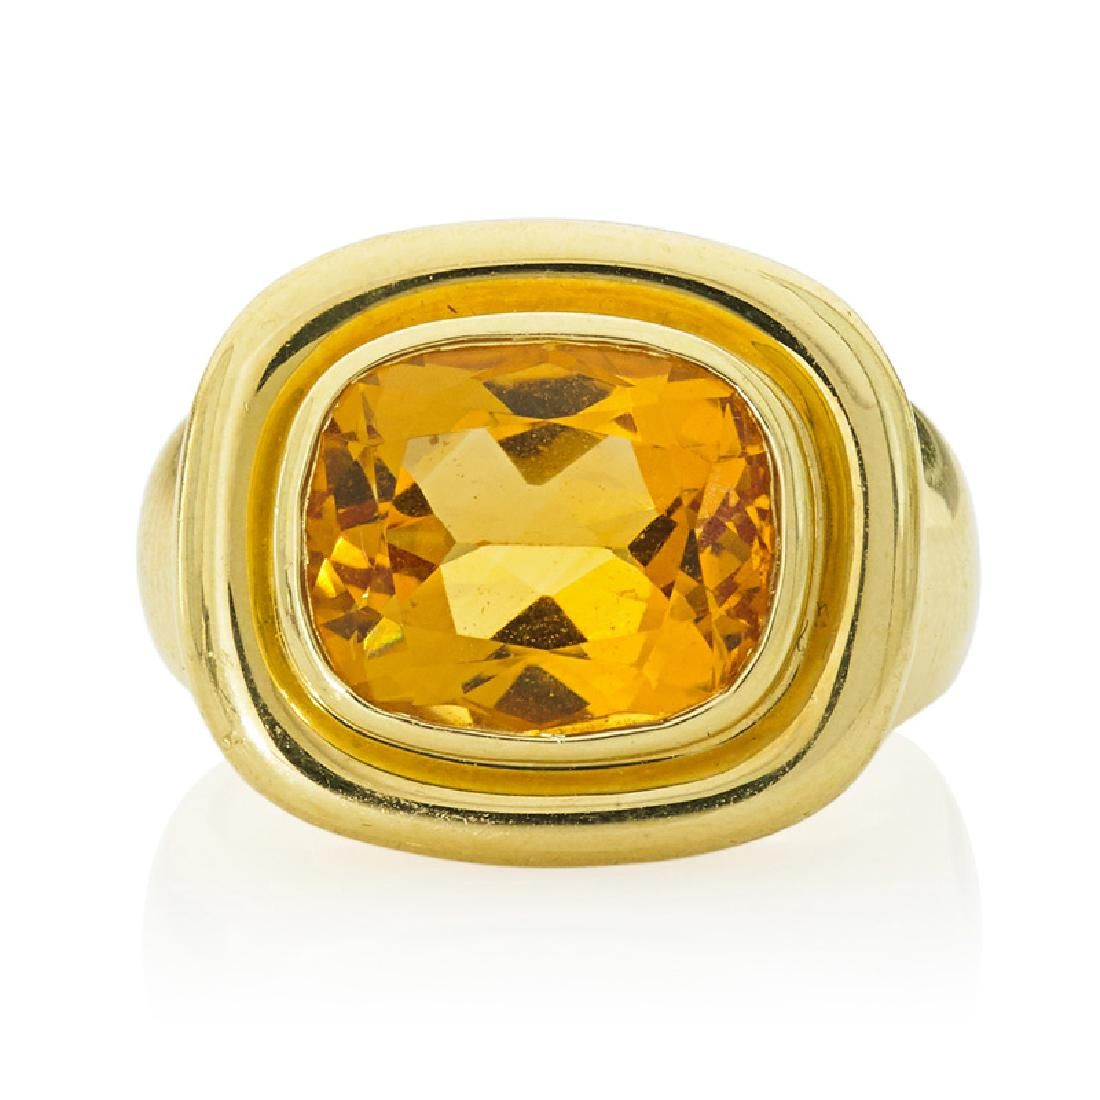 PALOMA PICASSO, TIFFANY & CO. CITRINE, YELLOW GOLD RING